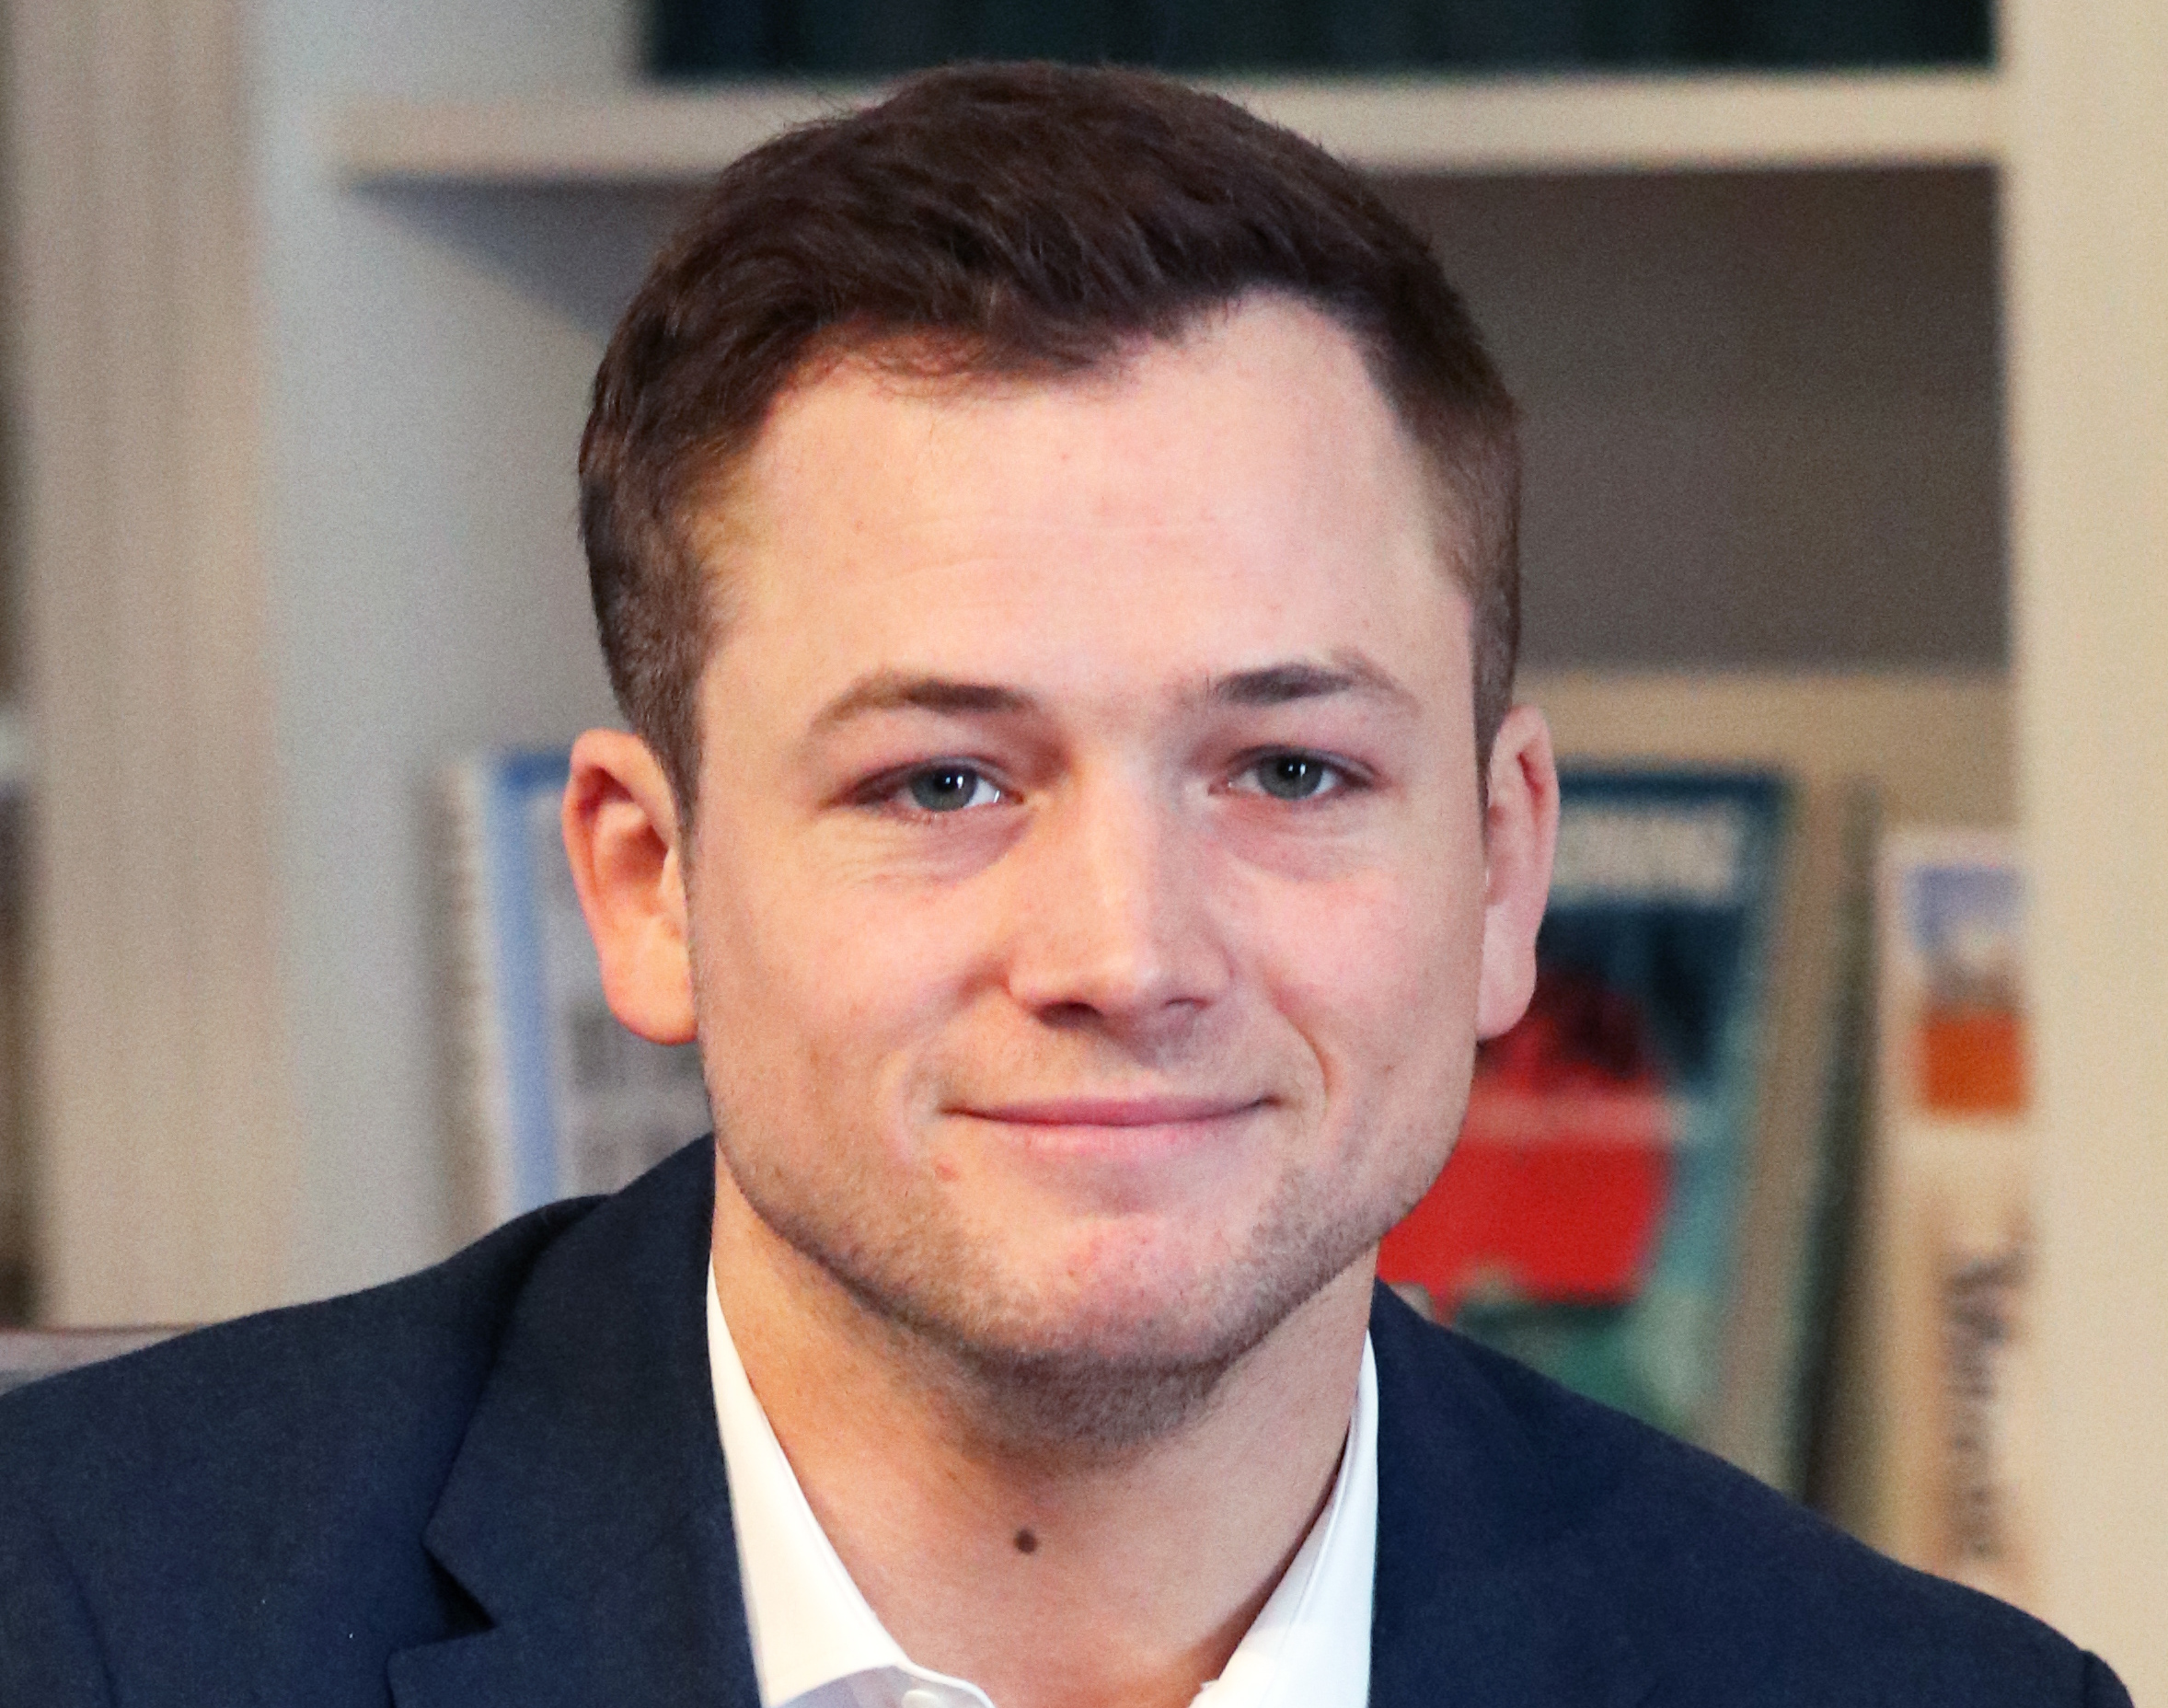 File:Taron-egerton-gesf-2018-5667 (cropped).jpg - Wikimedia Commons